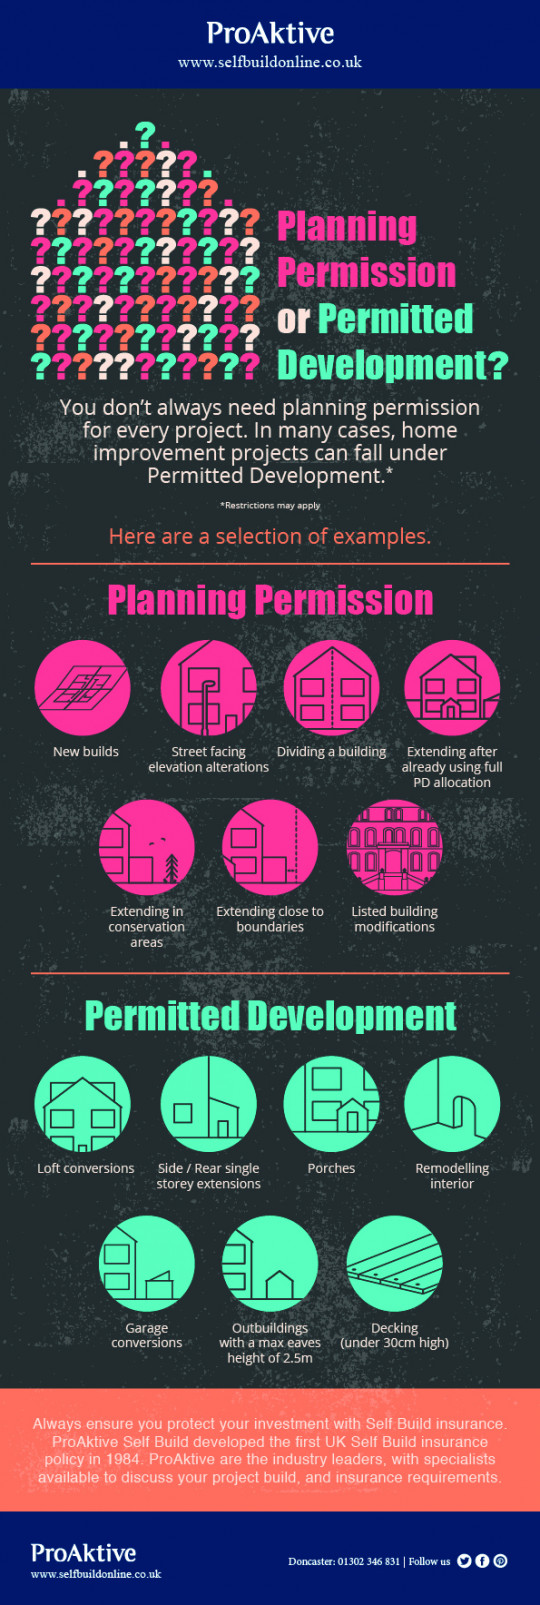 Planning Permission or Permitted Permission?